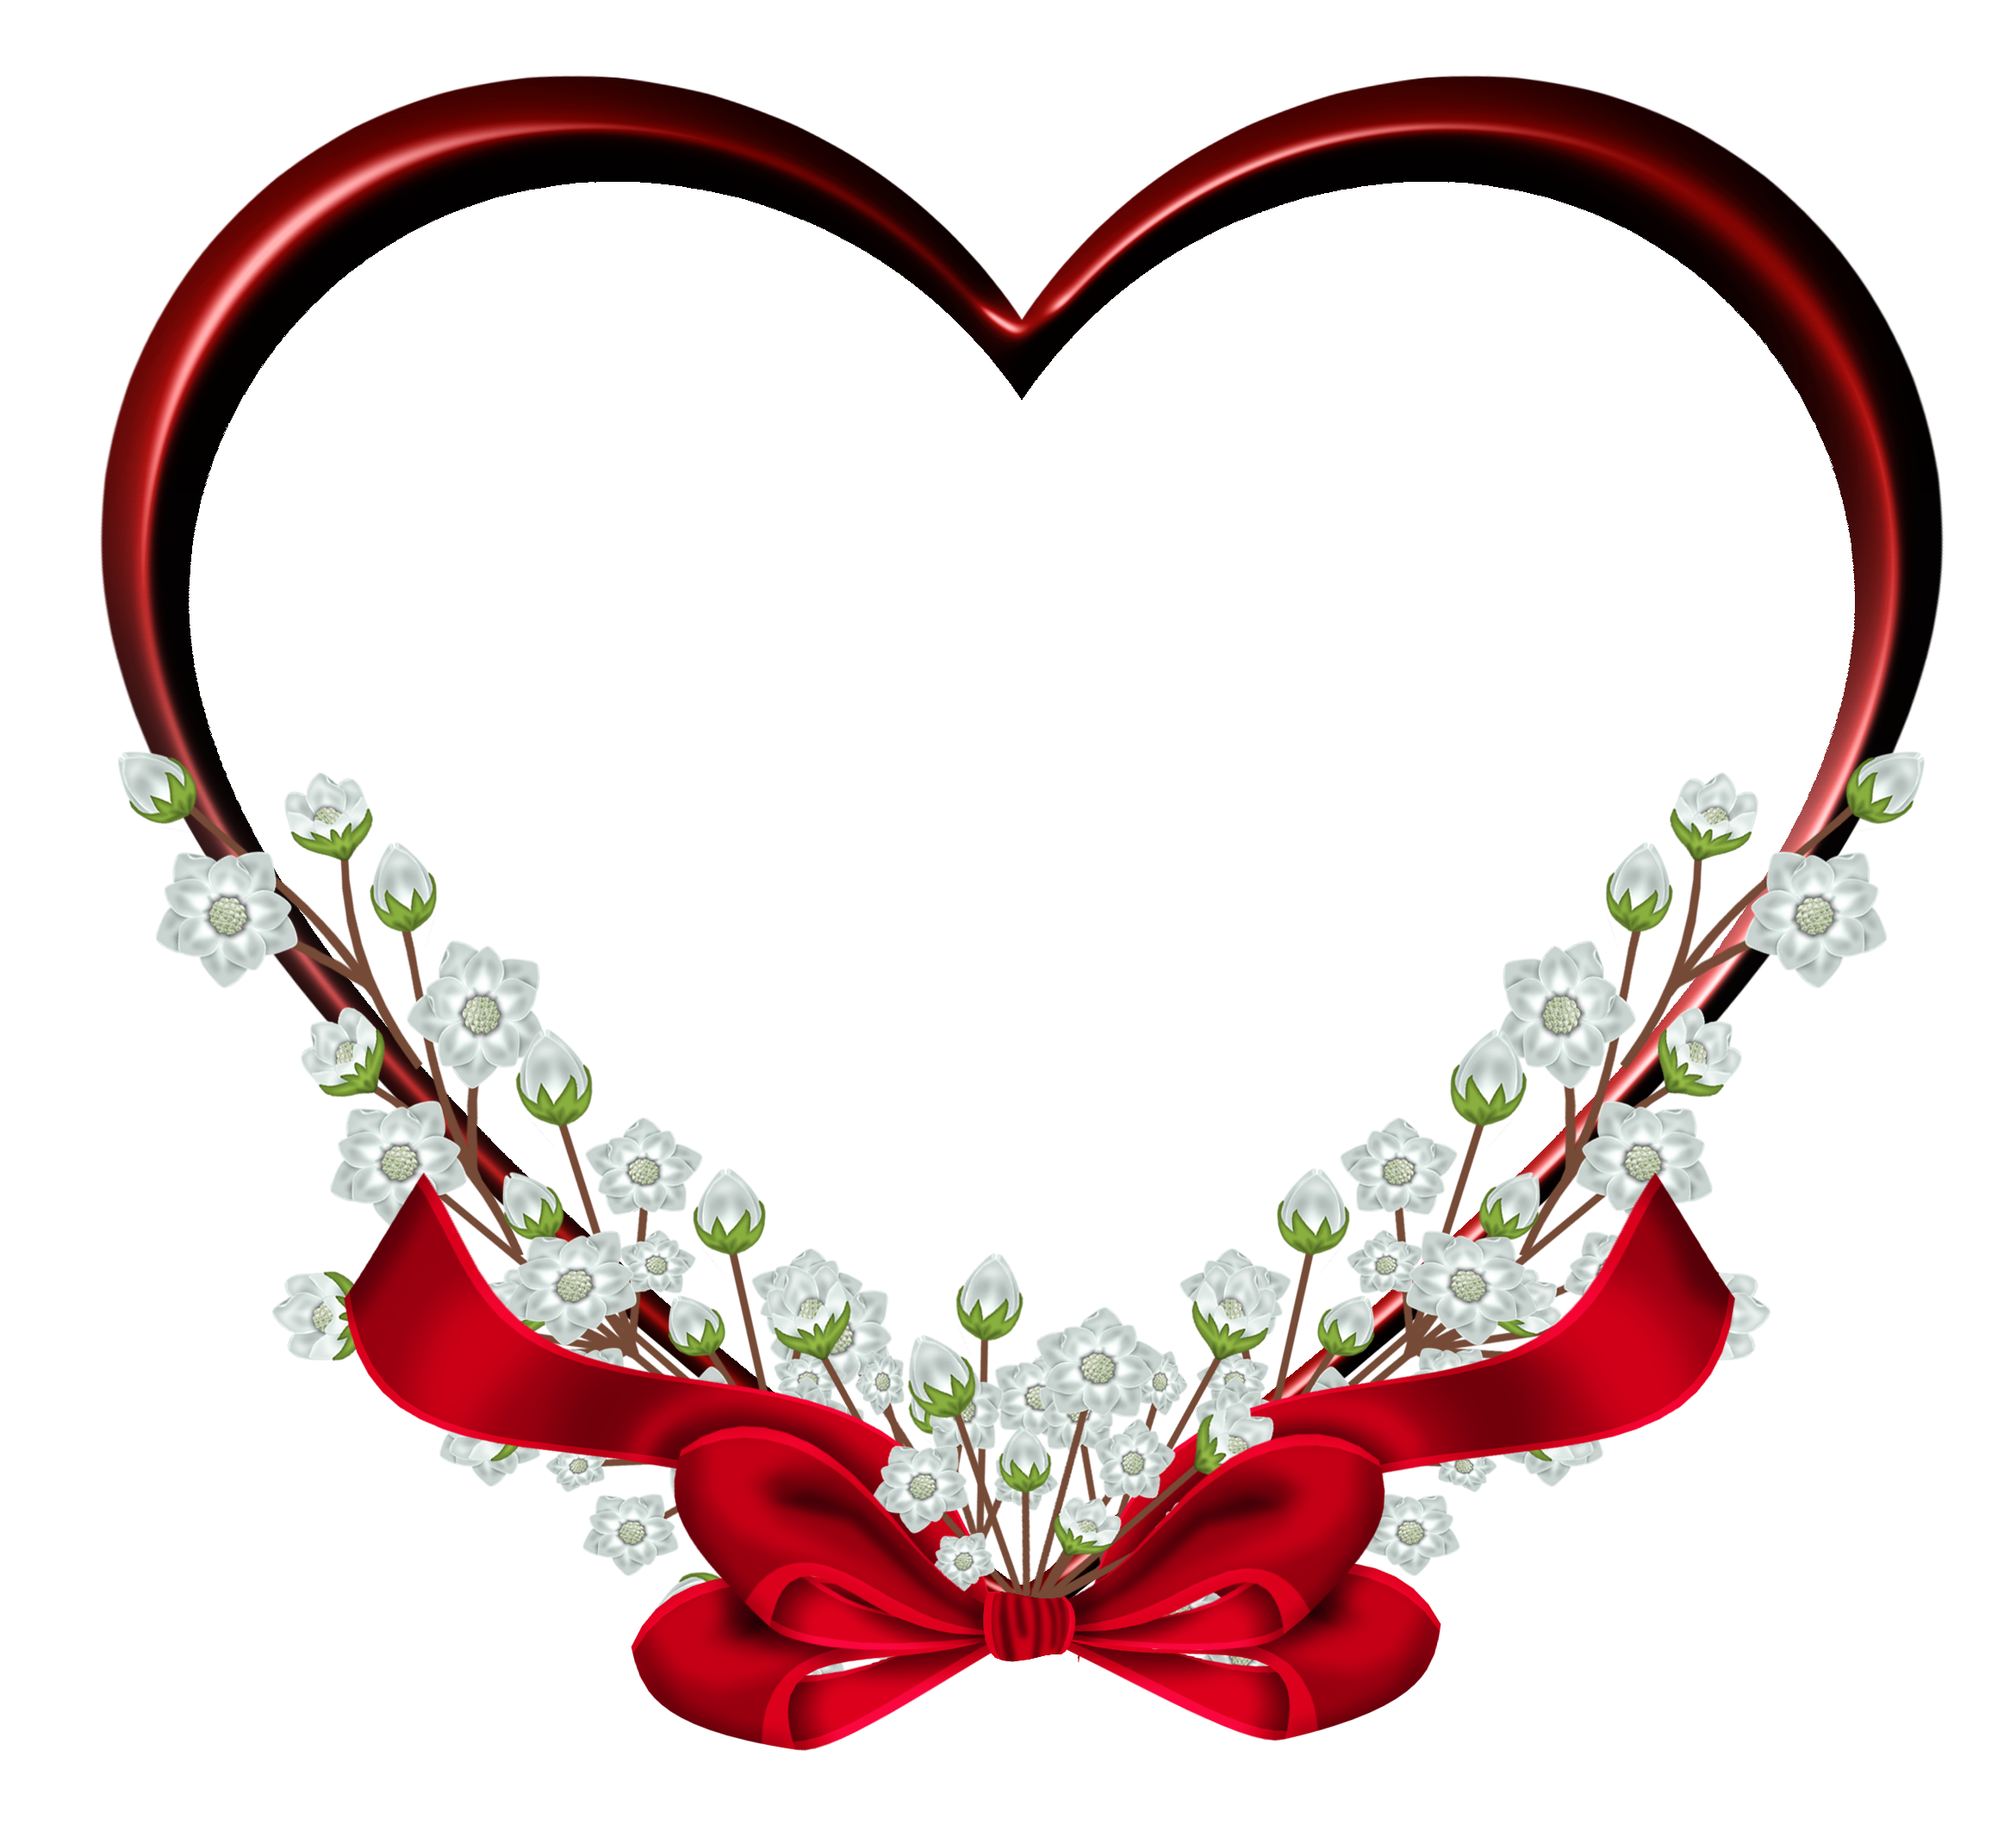 Red Heart Image PNG Image